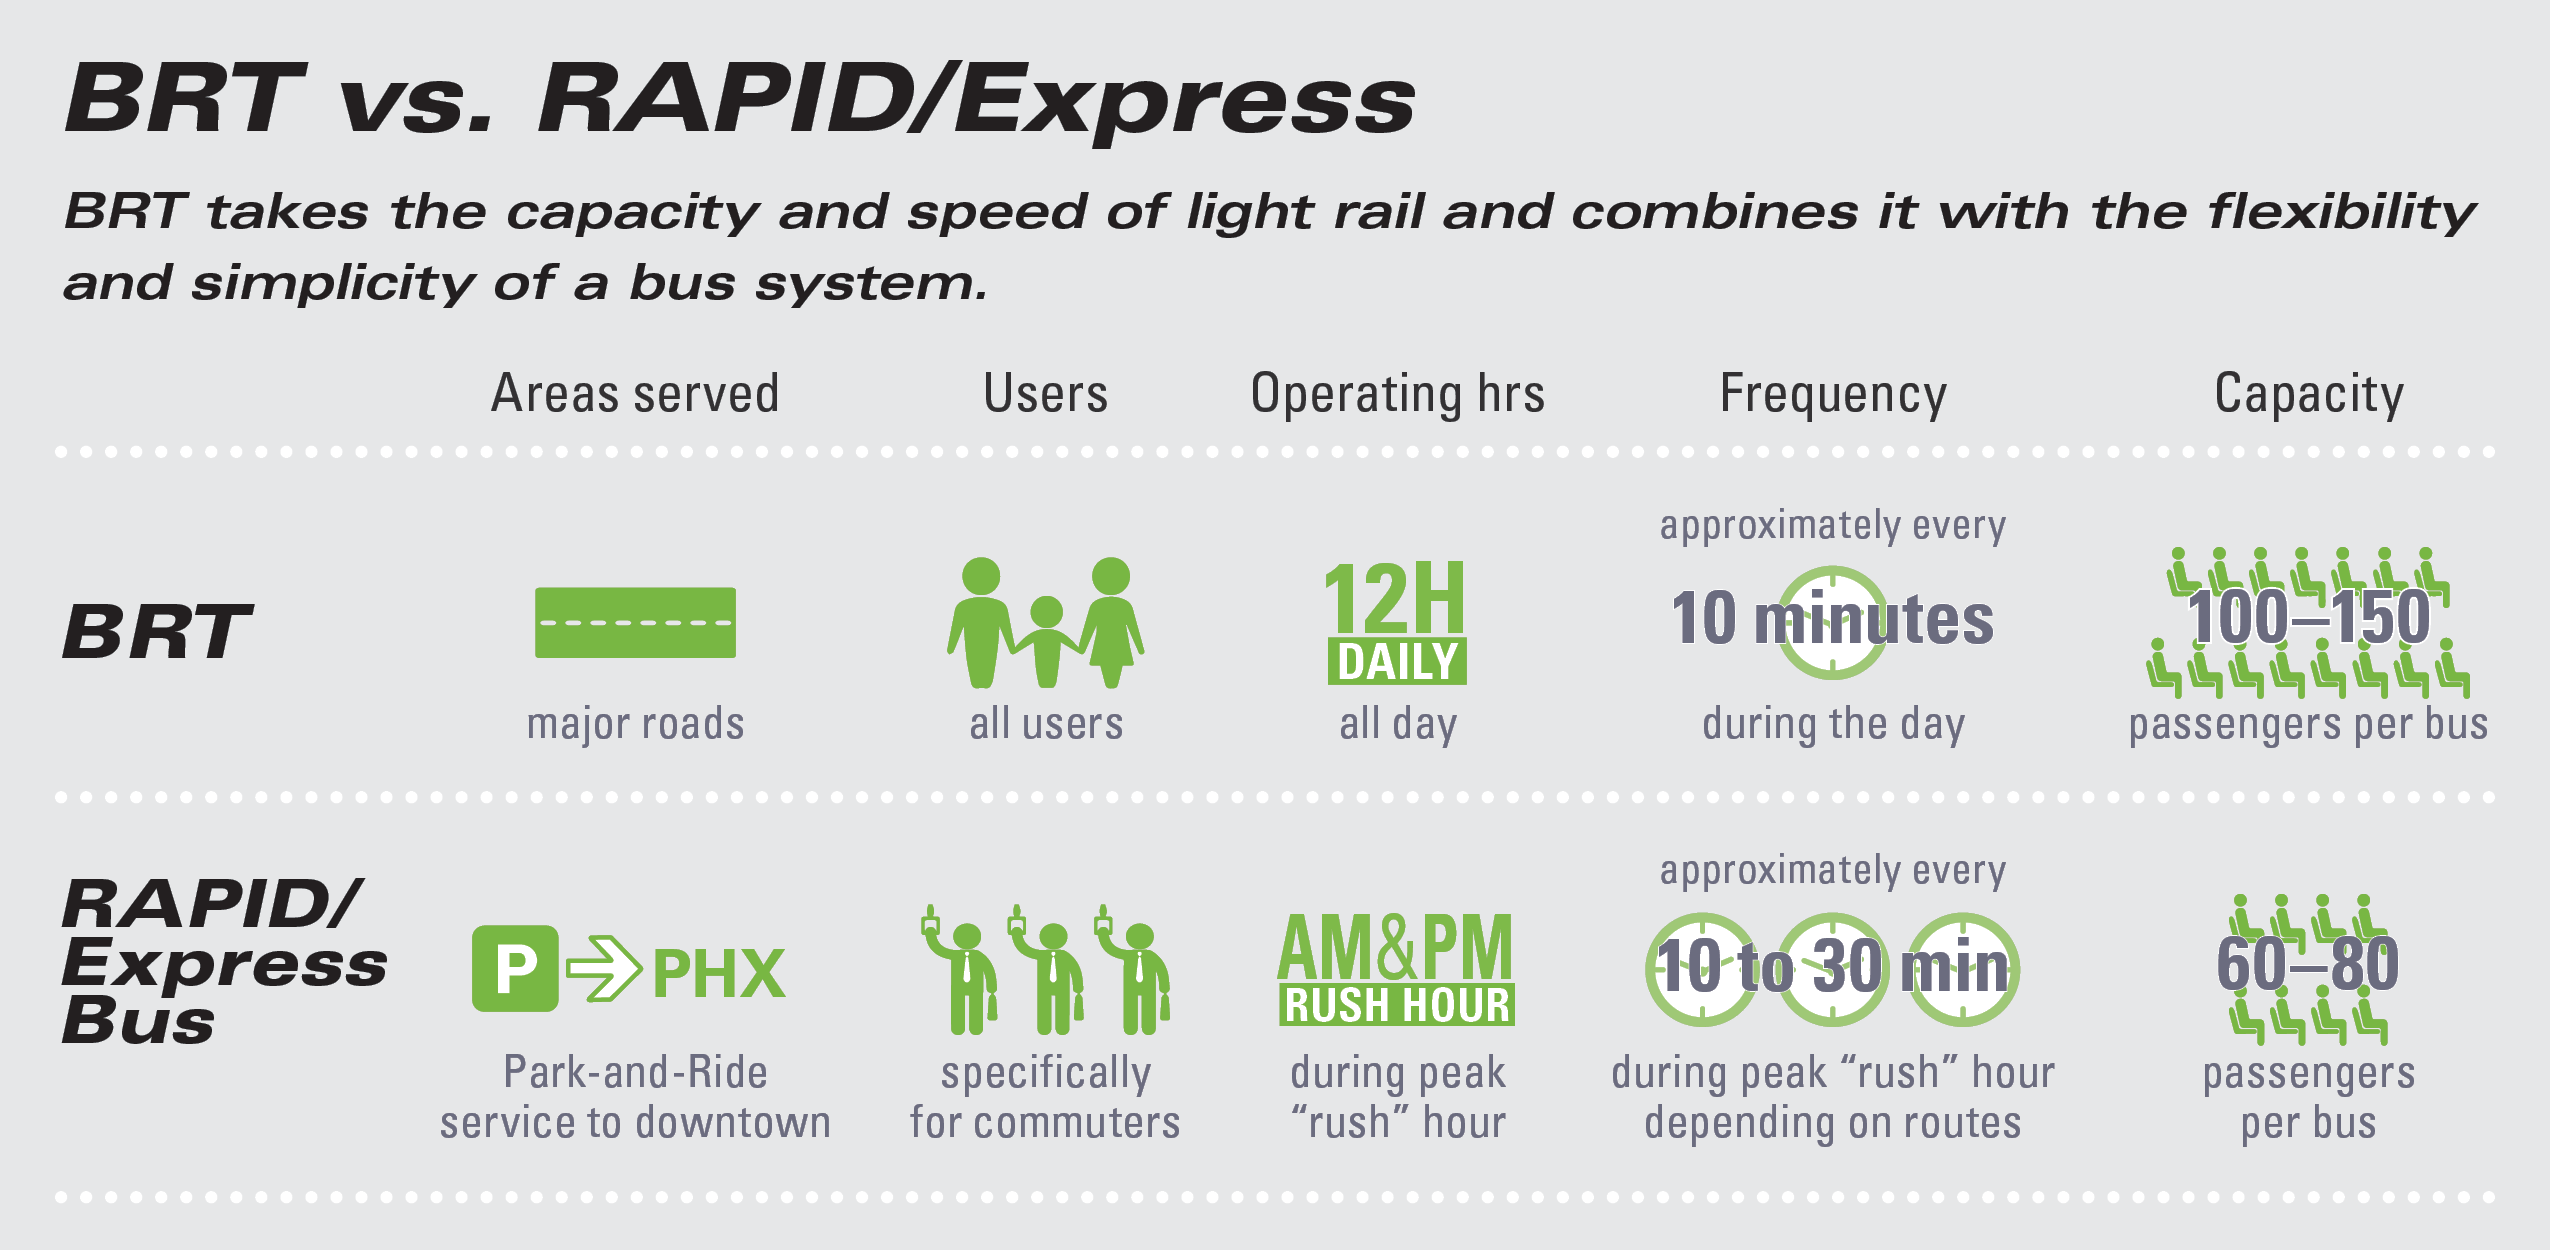 BRT versus RAPID/Express. BRT takes the capacity and speed of light rail and combines it with the flexibility and simplicity of a bus system. BRT: areas served, major roads; users, all users; operating hours, all day; frequency, approximately every 10 minutes during the day; capacity, 100 to 150 passengers per bus. RAPID/Express bus: areas served, park-and-ride service to downtown; users, specifically for commuters; operating hours, during peak a.m. and p.m. 'rush' hour; frequency, approximately every 10 to 30 minutes during peak 'rush' hour depending on routes; capacity, 60 to 80 passengers per bus